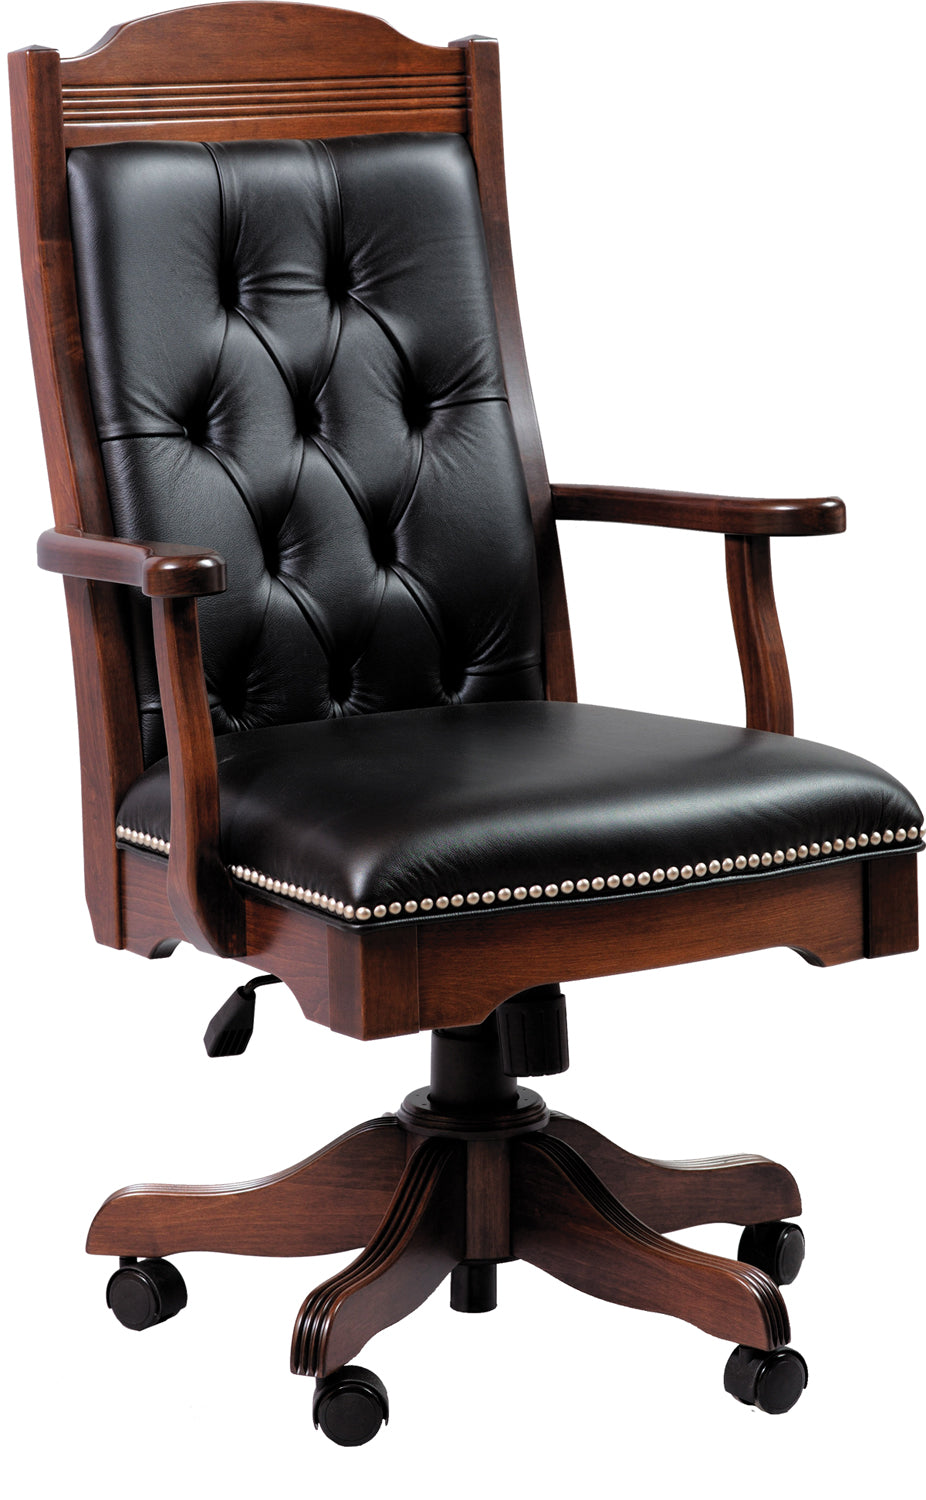 Starr Executive Arm Desk Chair